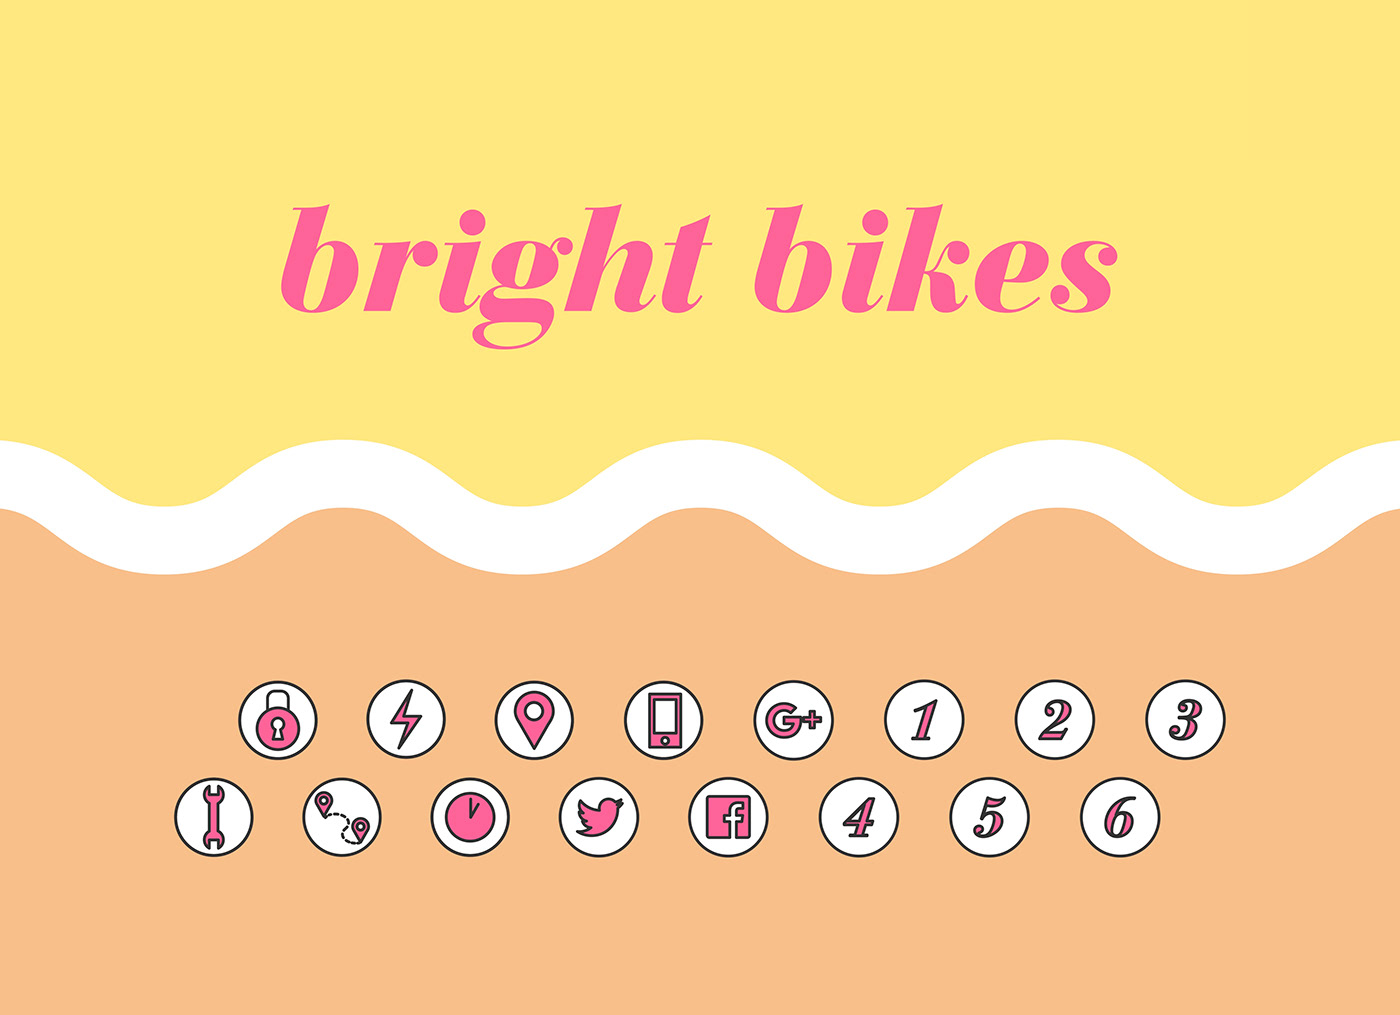 Bike rental Website icons sussex south downs Cycling Holiday dutch cargo bikes sharing